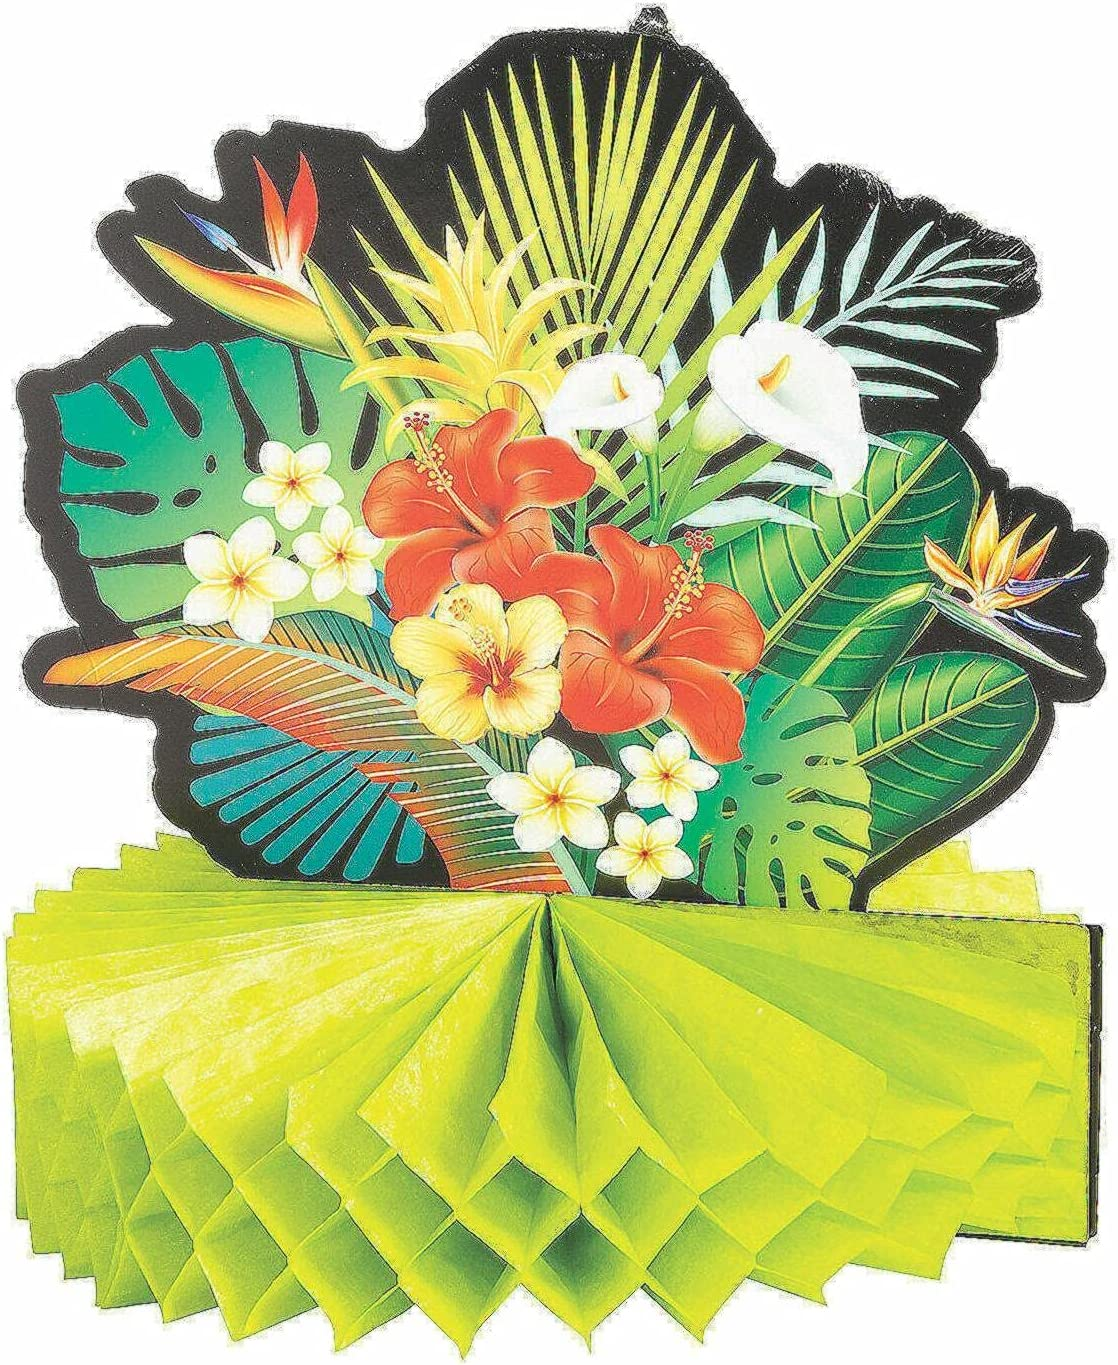 Popular brand in the world Special price Tropical Nights Party Centerpieces Pieces - Decor 3